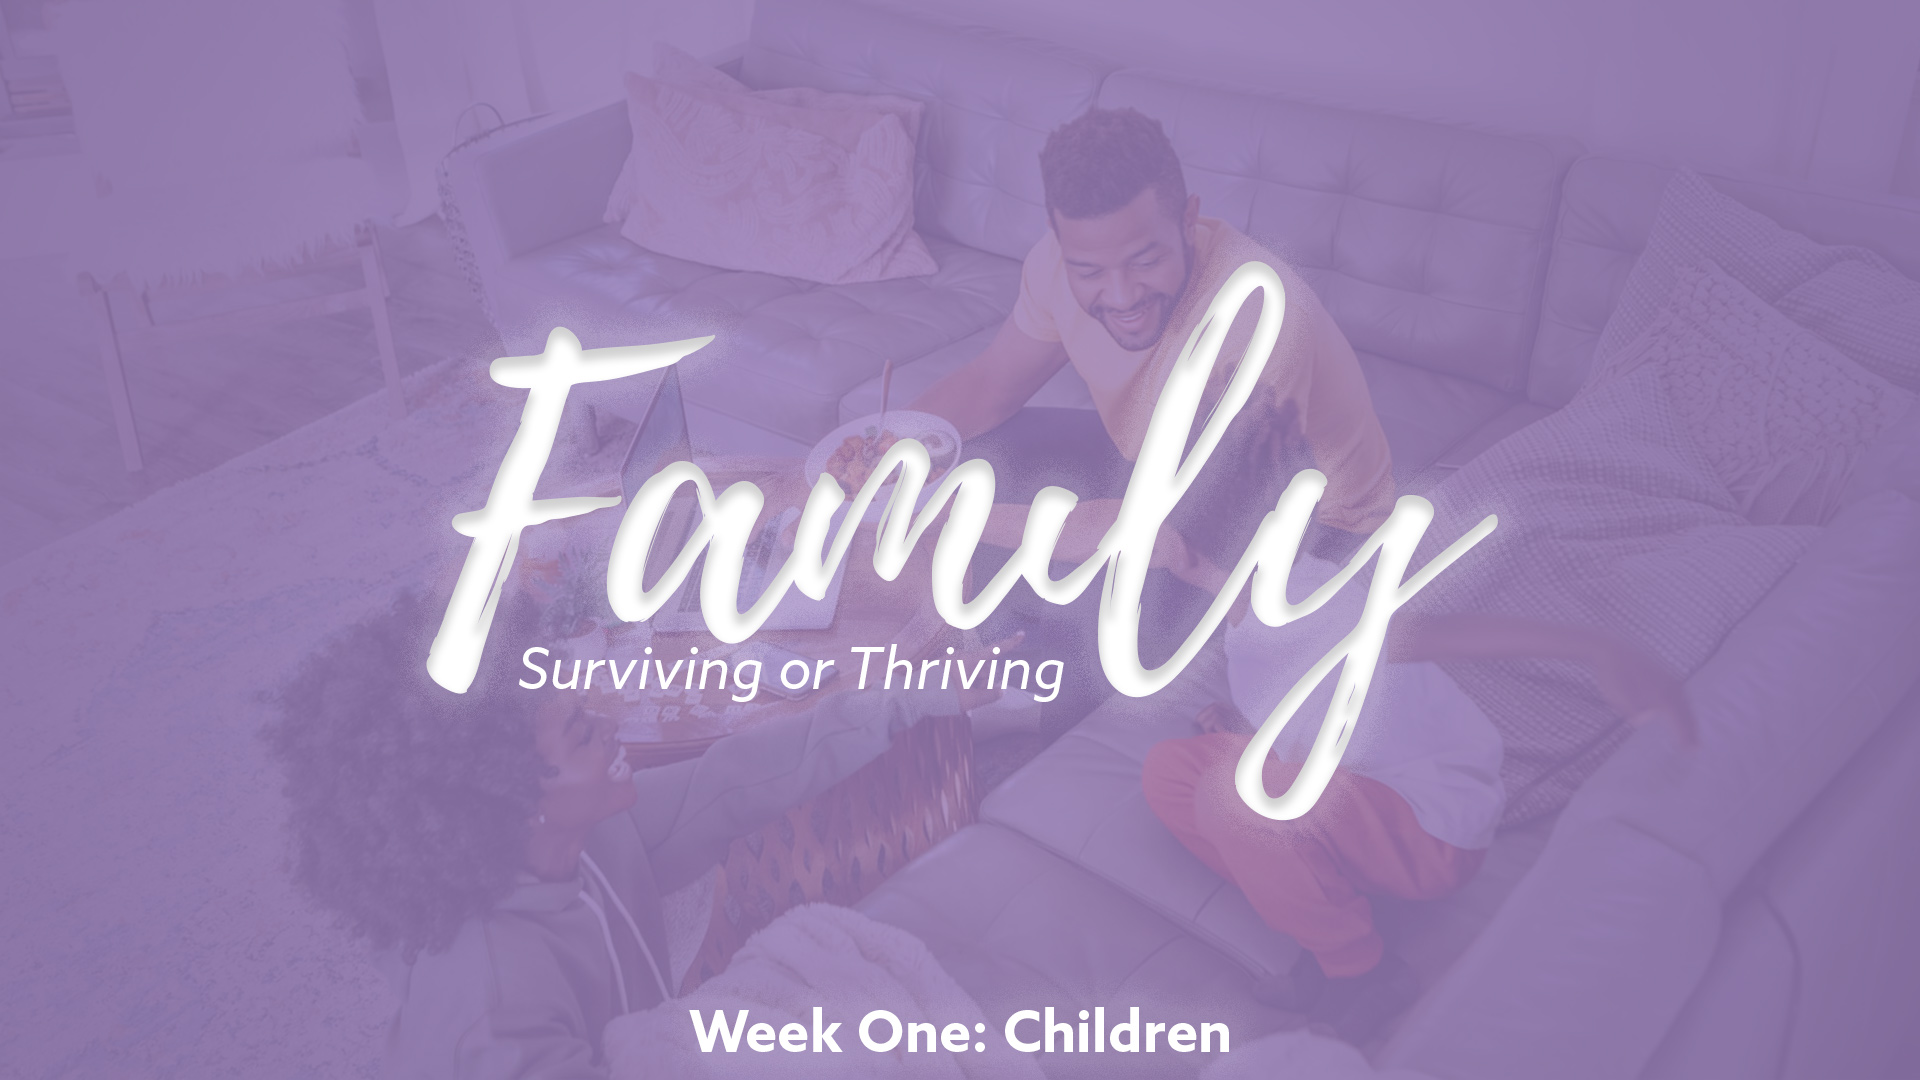 Family – Surviving or Thriving: Children